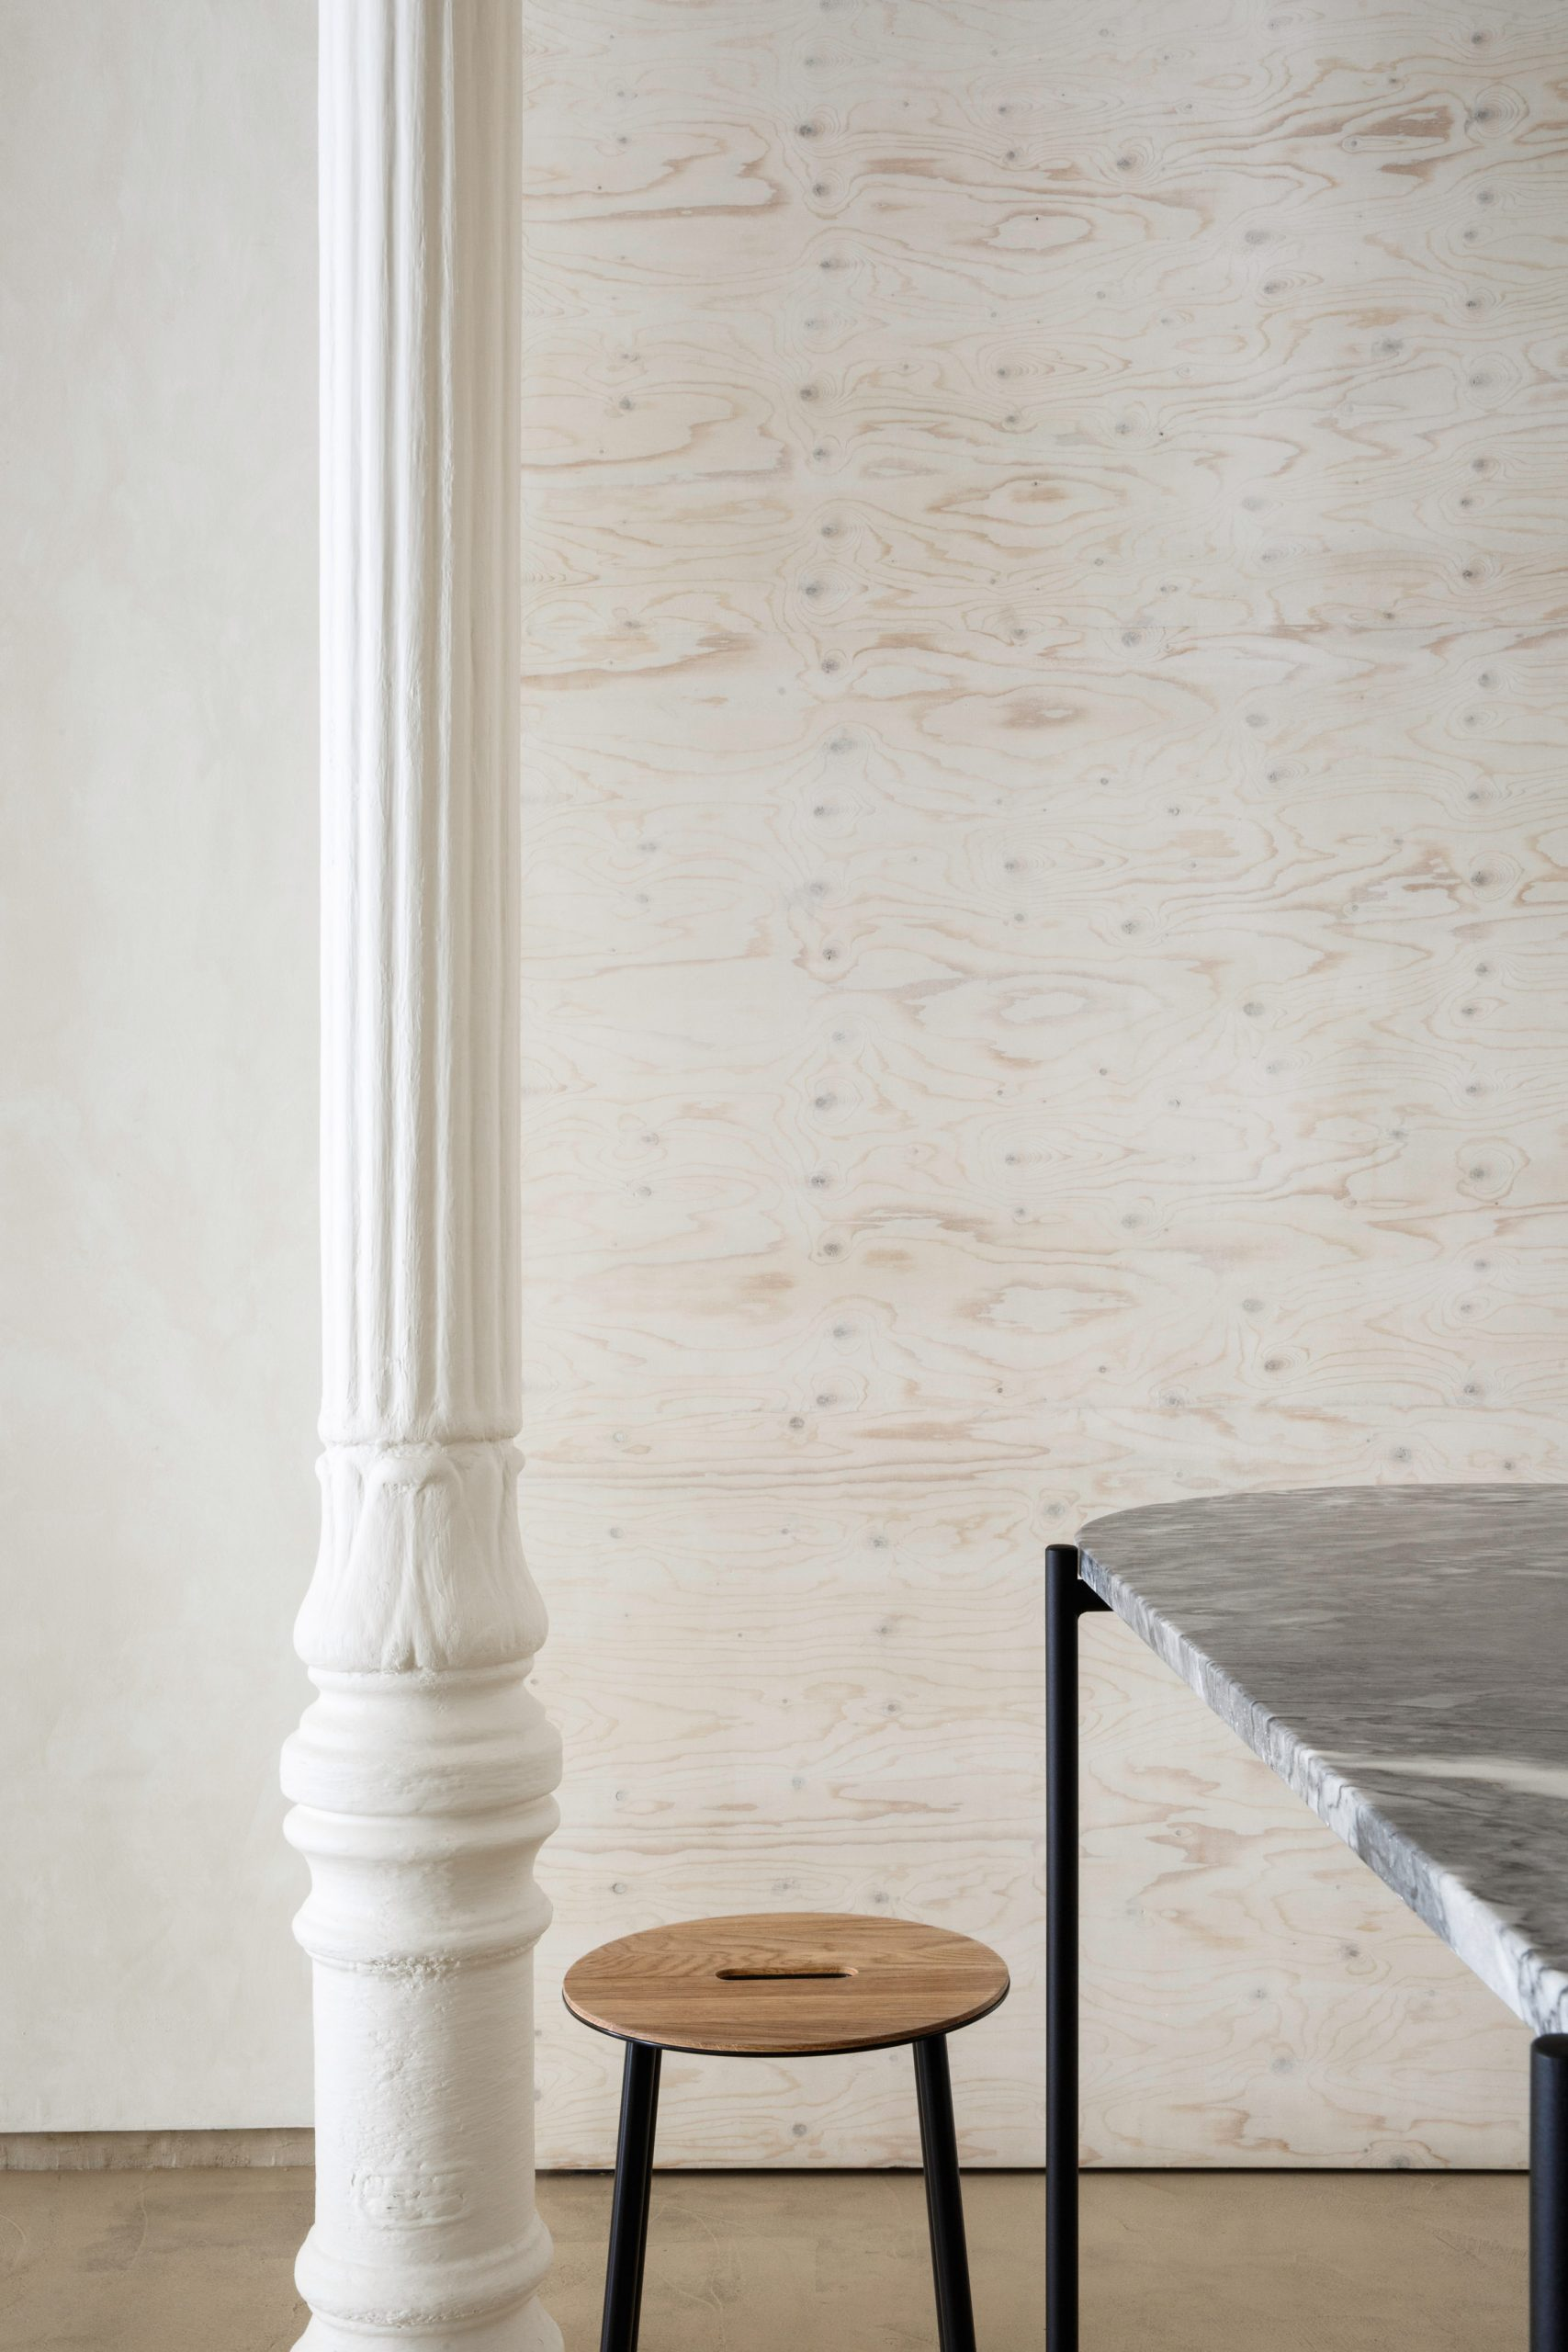 Informal dining area of Zuppa restaurant by Plantea Estudio with marble tables